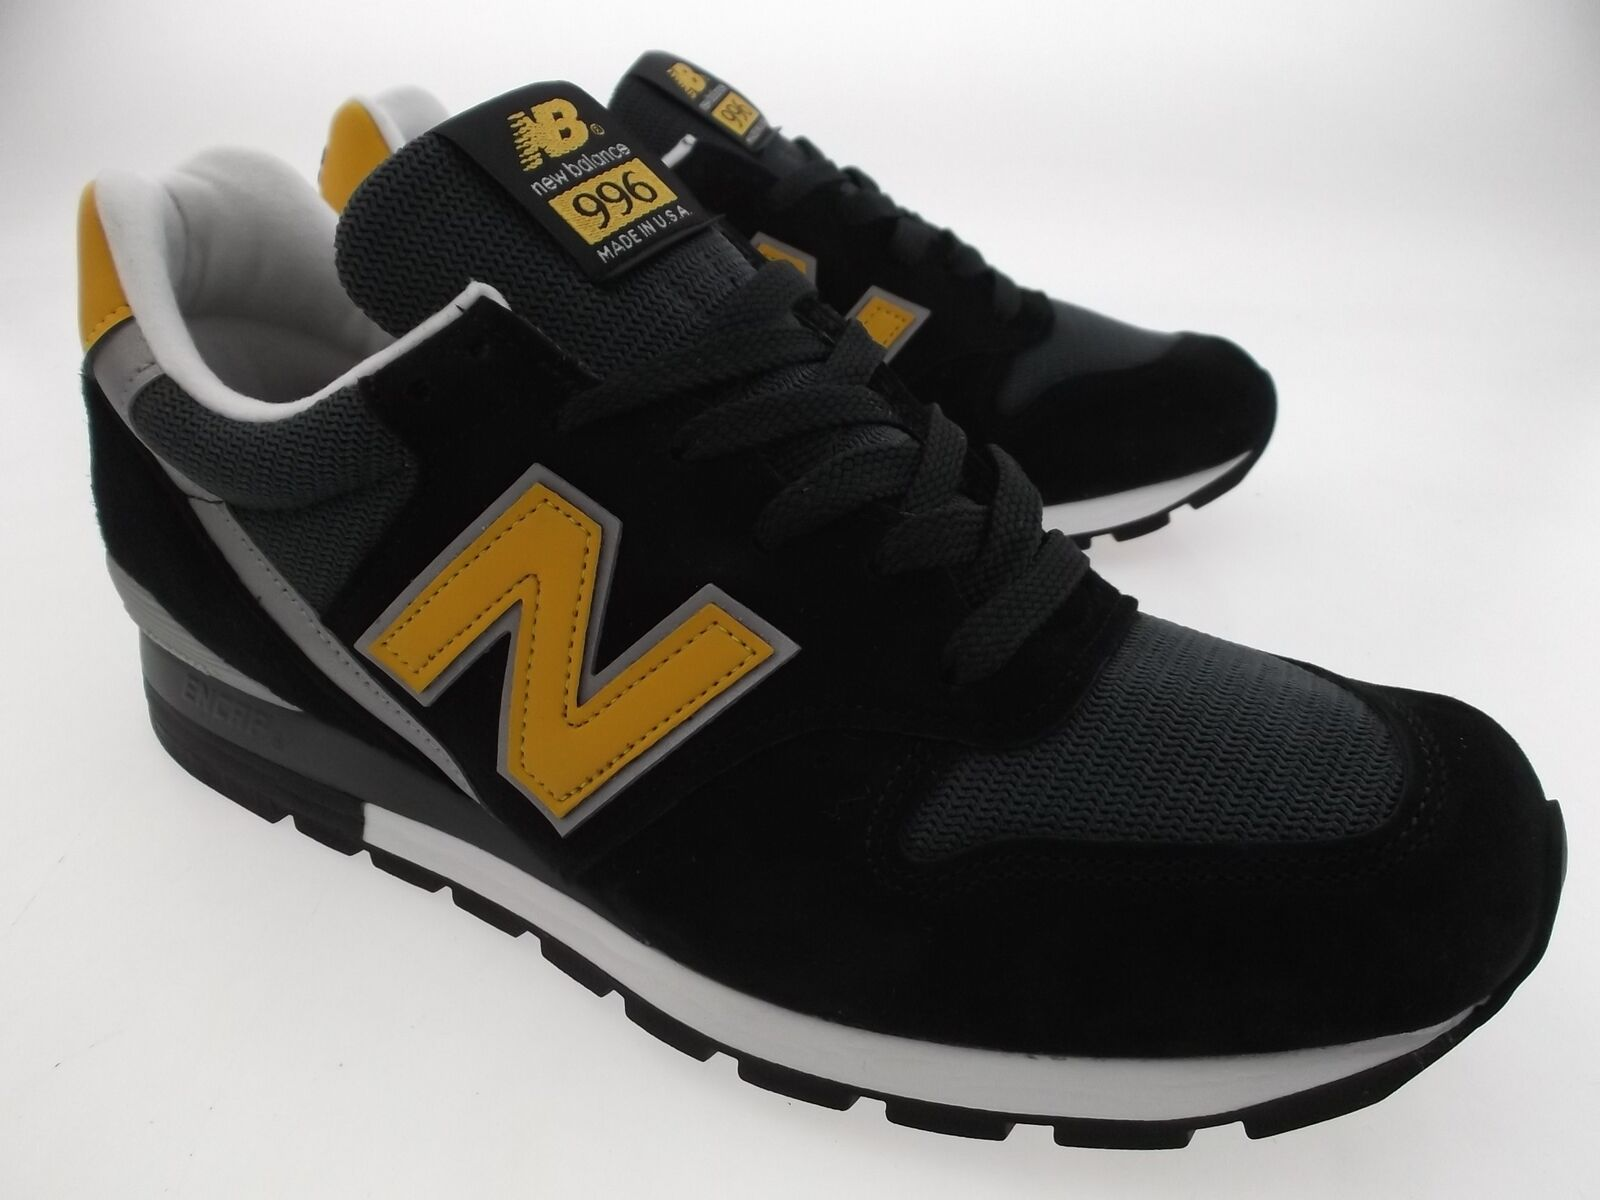 New Balance Men 996 Connoisseur Ski M996CSMI - Made In USA black yellow silver M